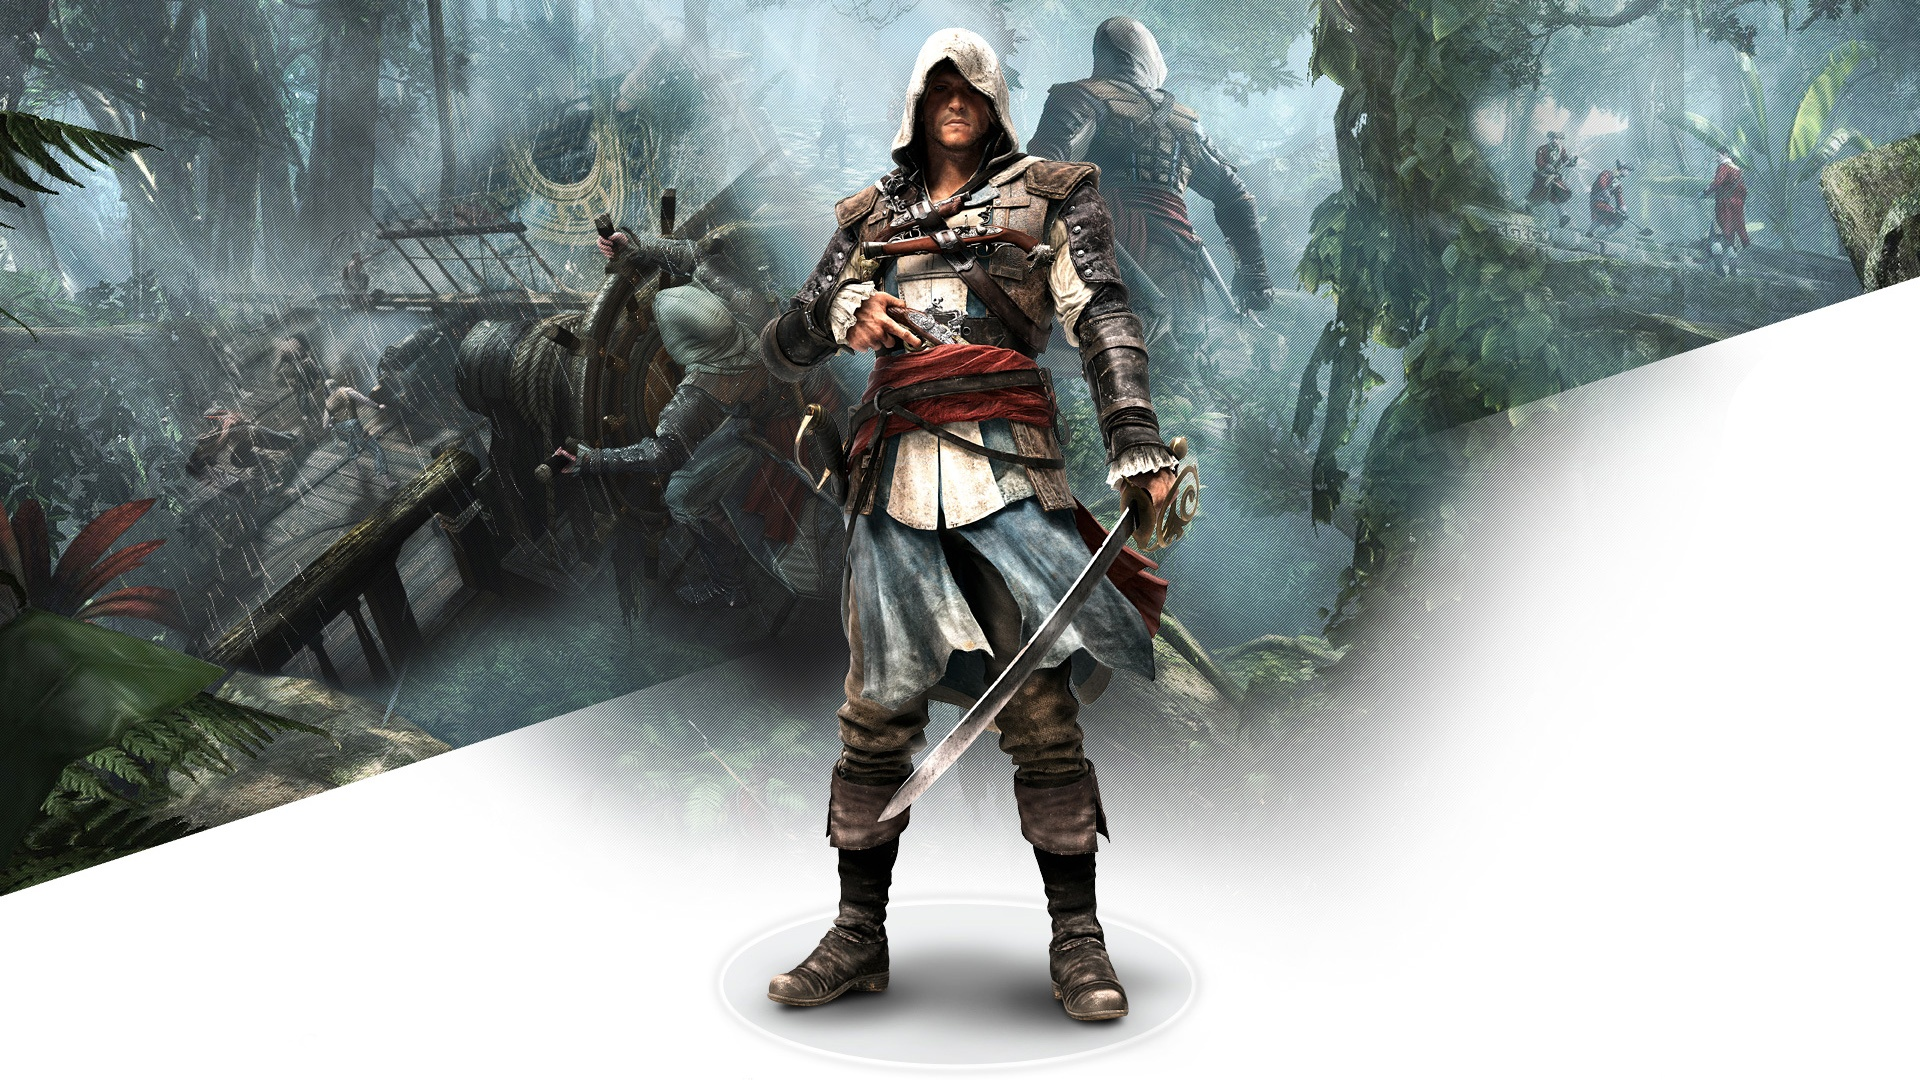 Assassins Creed Iv Black Flag Game Wallpapers In Jpg Format For Free Download